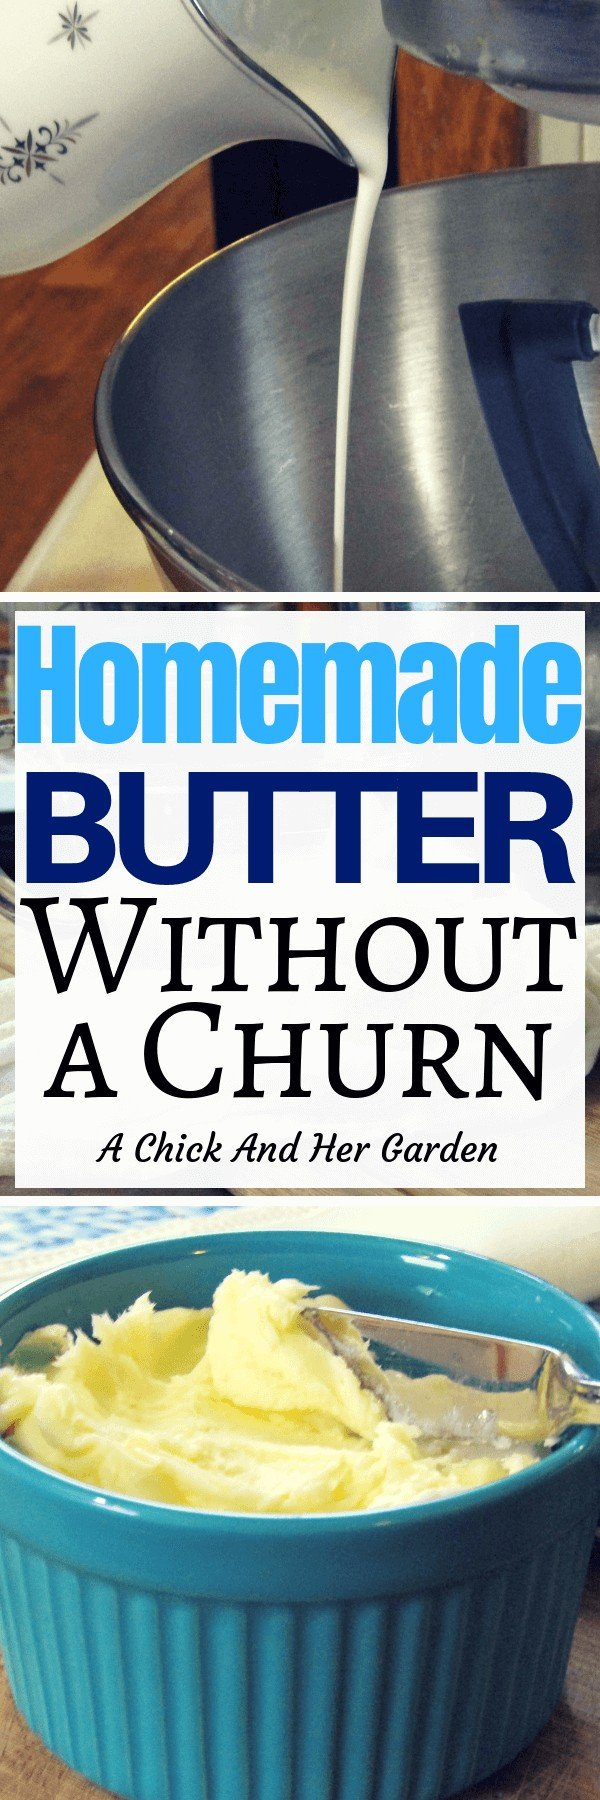 When you're trying to find ways to cut out processed foods, homemade butter is one of the easiest steps to take! This butter is so creamy and there was almost no work involved! Bonus you get buttermilk when you're done! #cleaneating #fromscratchcooking #homemadefood #butter #achickandhergarden